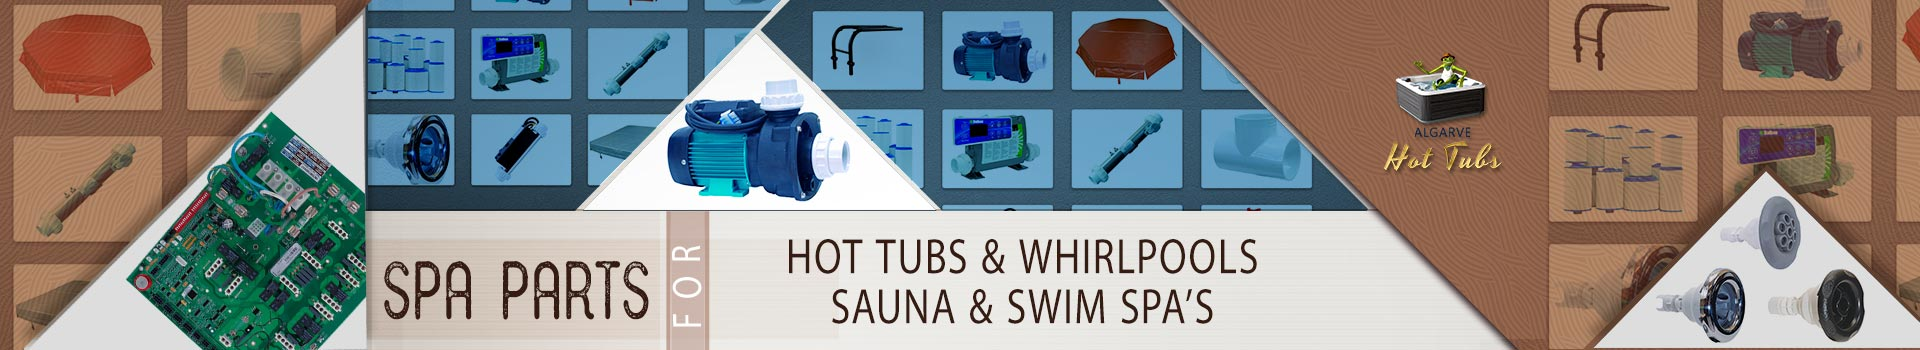 Hottubs - Spa Parts - Wellness Dreams Algarve